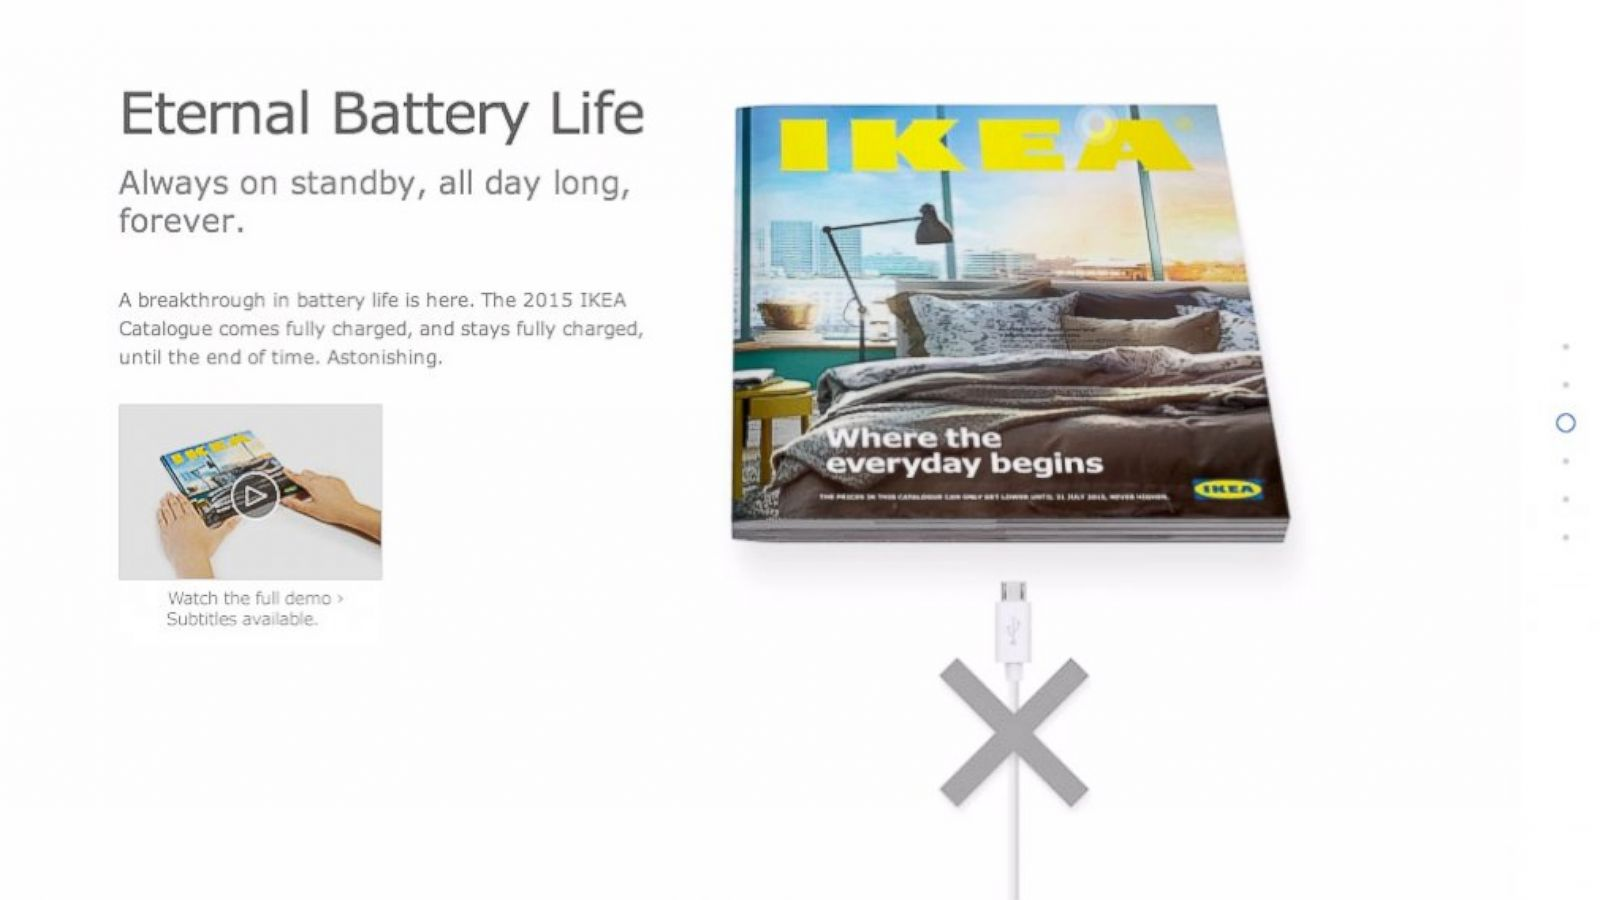 Funny Ikea Commercial for 2015 Catalog Mocks Apple Video - ABC News